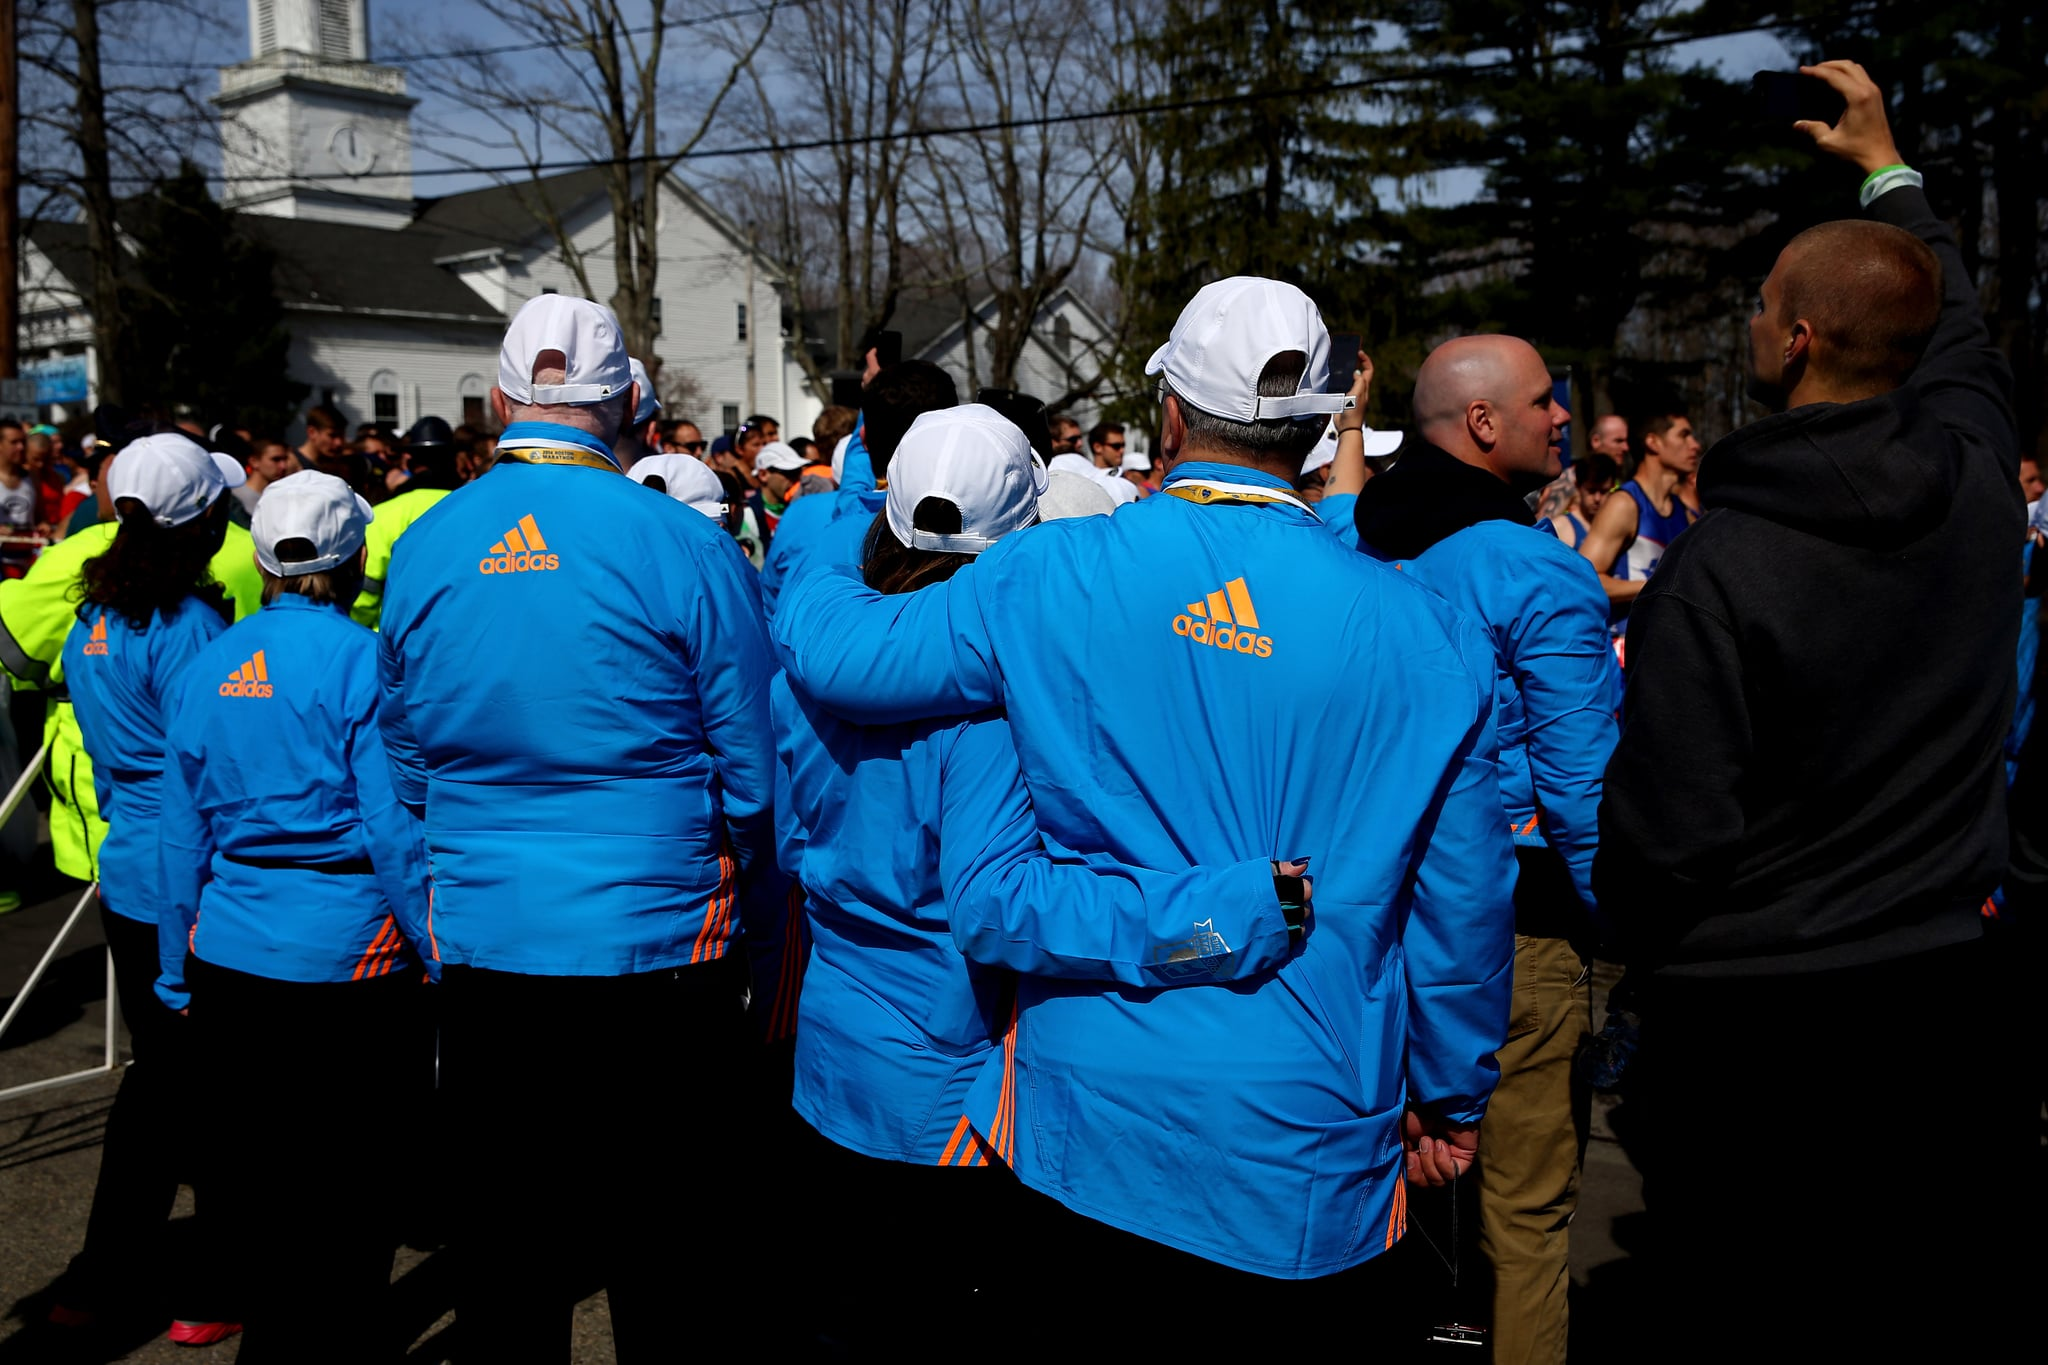 Volunteers had their arms around one another while they watched the race.